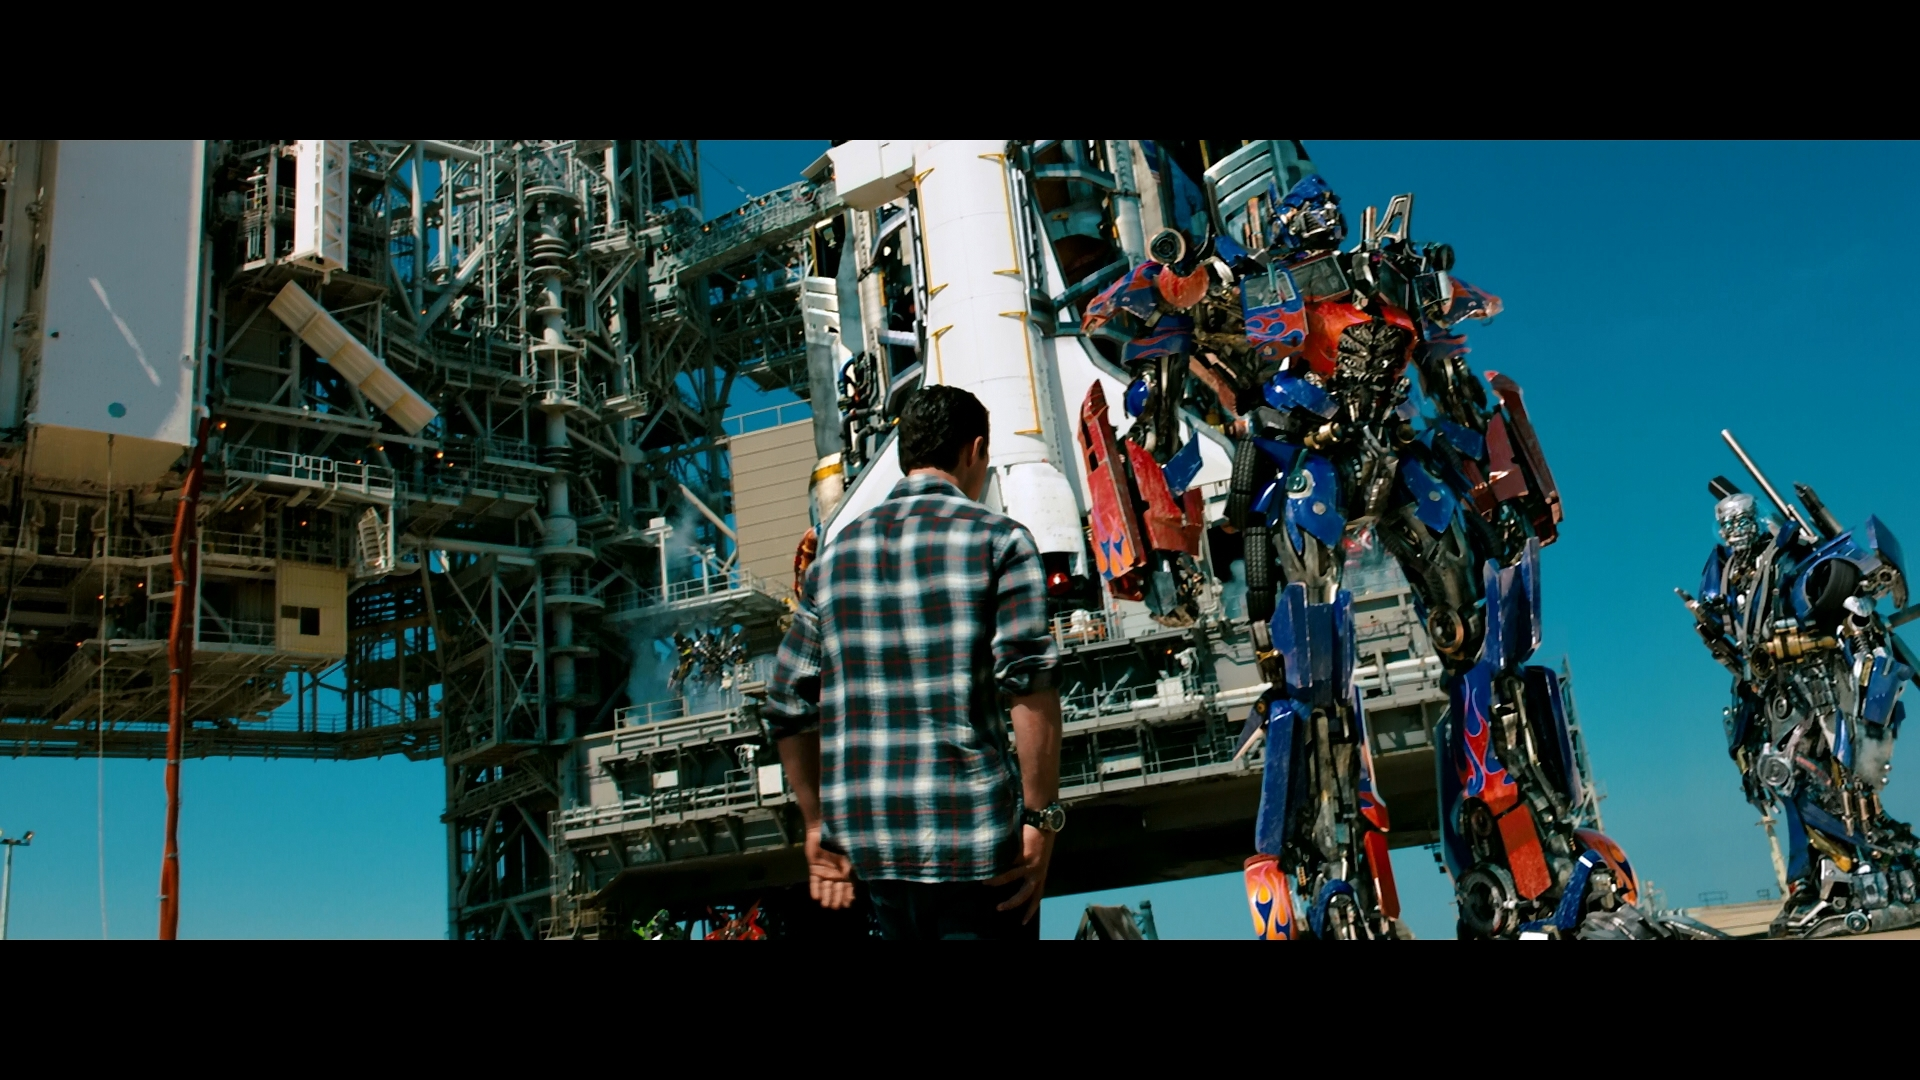 Full resolution      1 920   215  1 080 pixels  file size  1 09 MB  MIME    Que Transformers 3